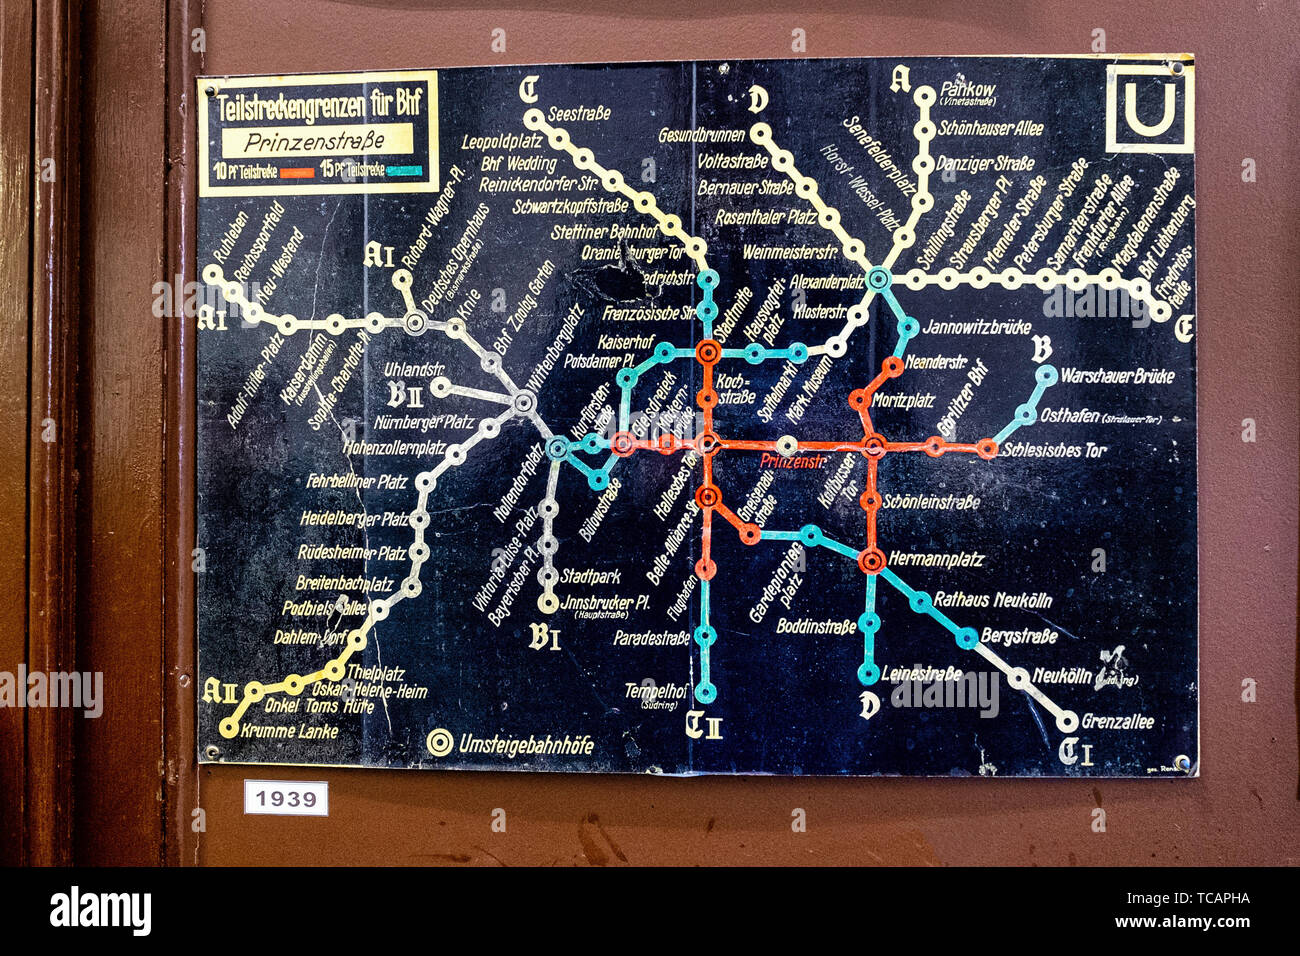 U-Bahn Museum Berlin. Transport museum in one of the former historic control rooms at the Olympia Stadium metro station. Old 1939 U-Bahn map Stock Photo